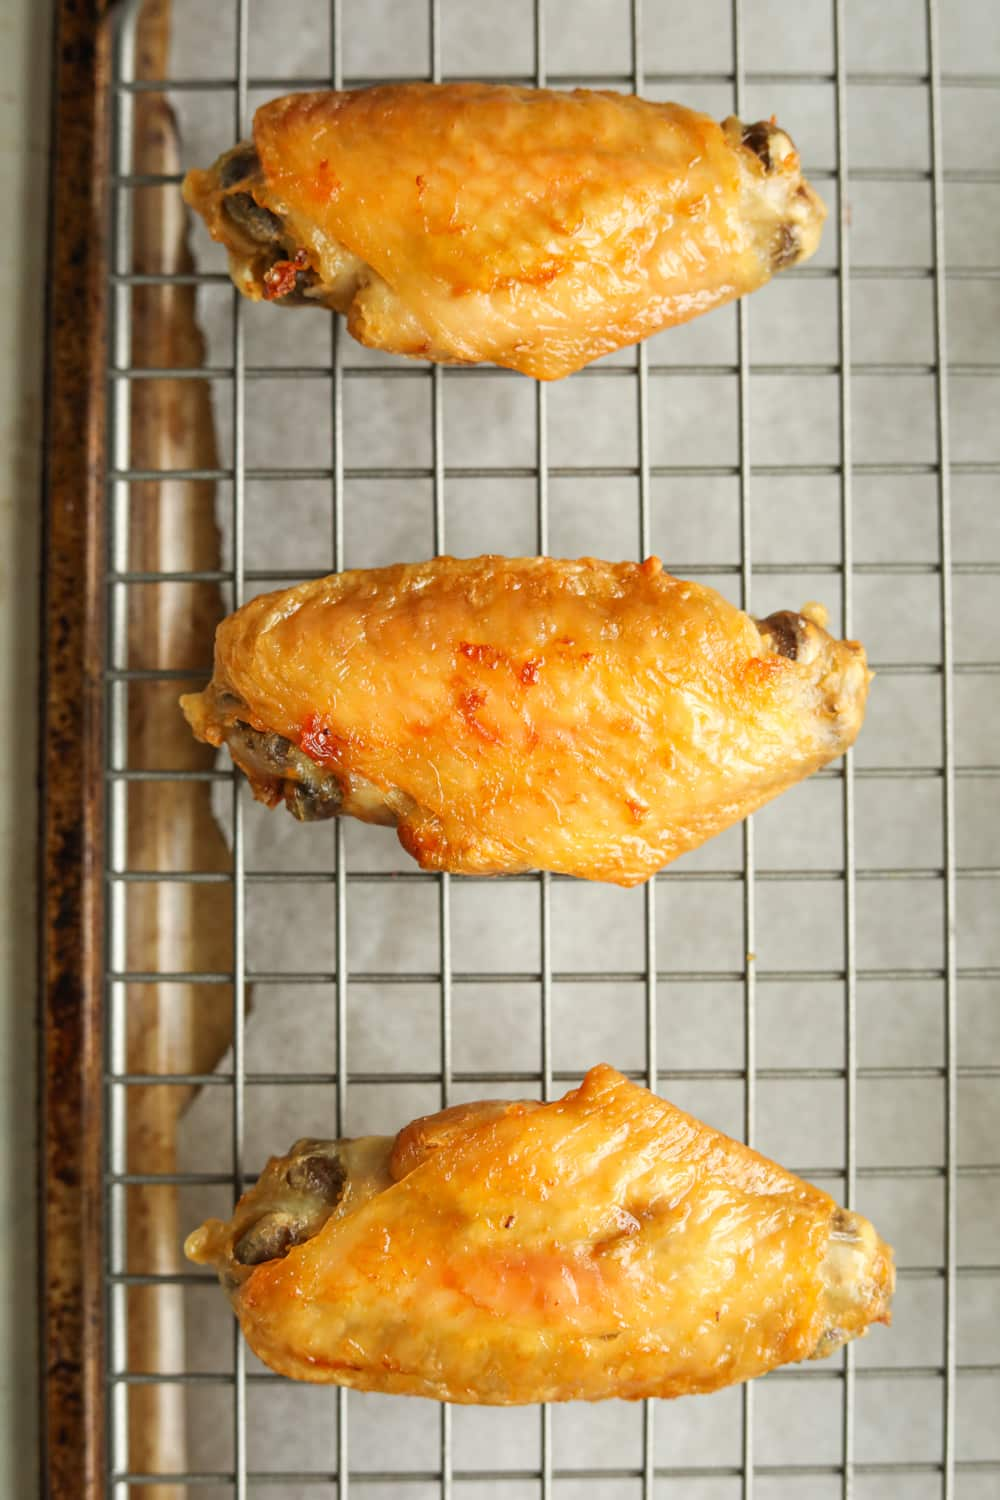 Cooked chicken wings on a wire rack.